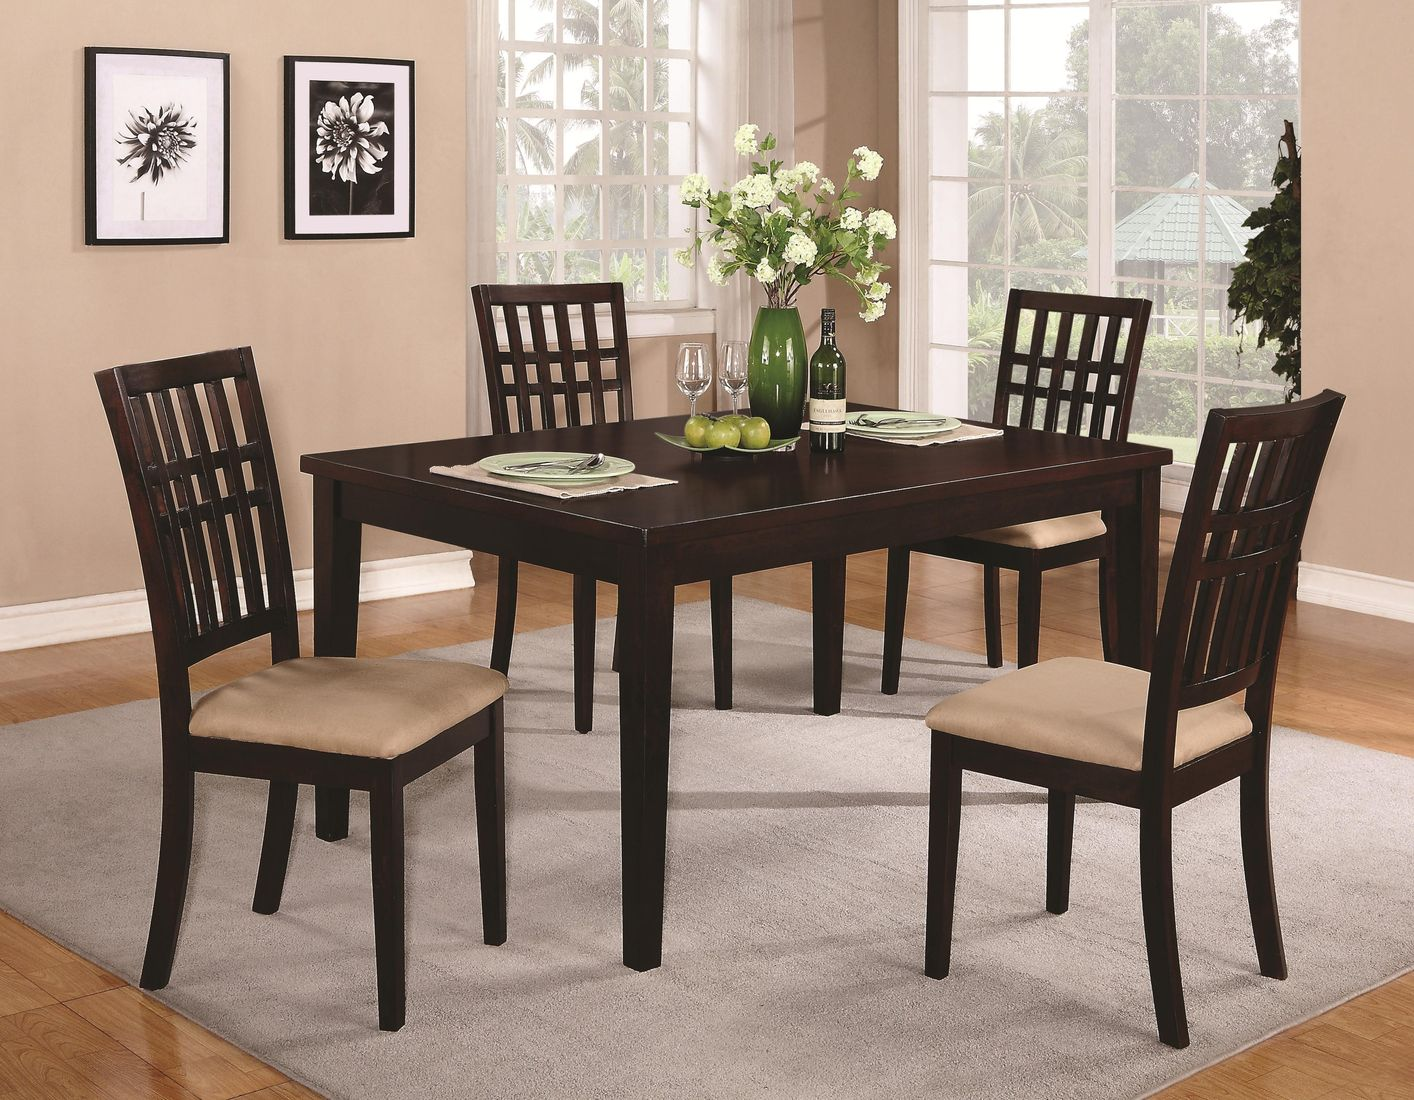 brandt dark cherry wood dining table - steal-a-sofa furniture